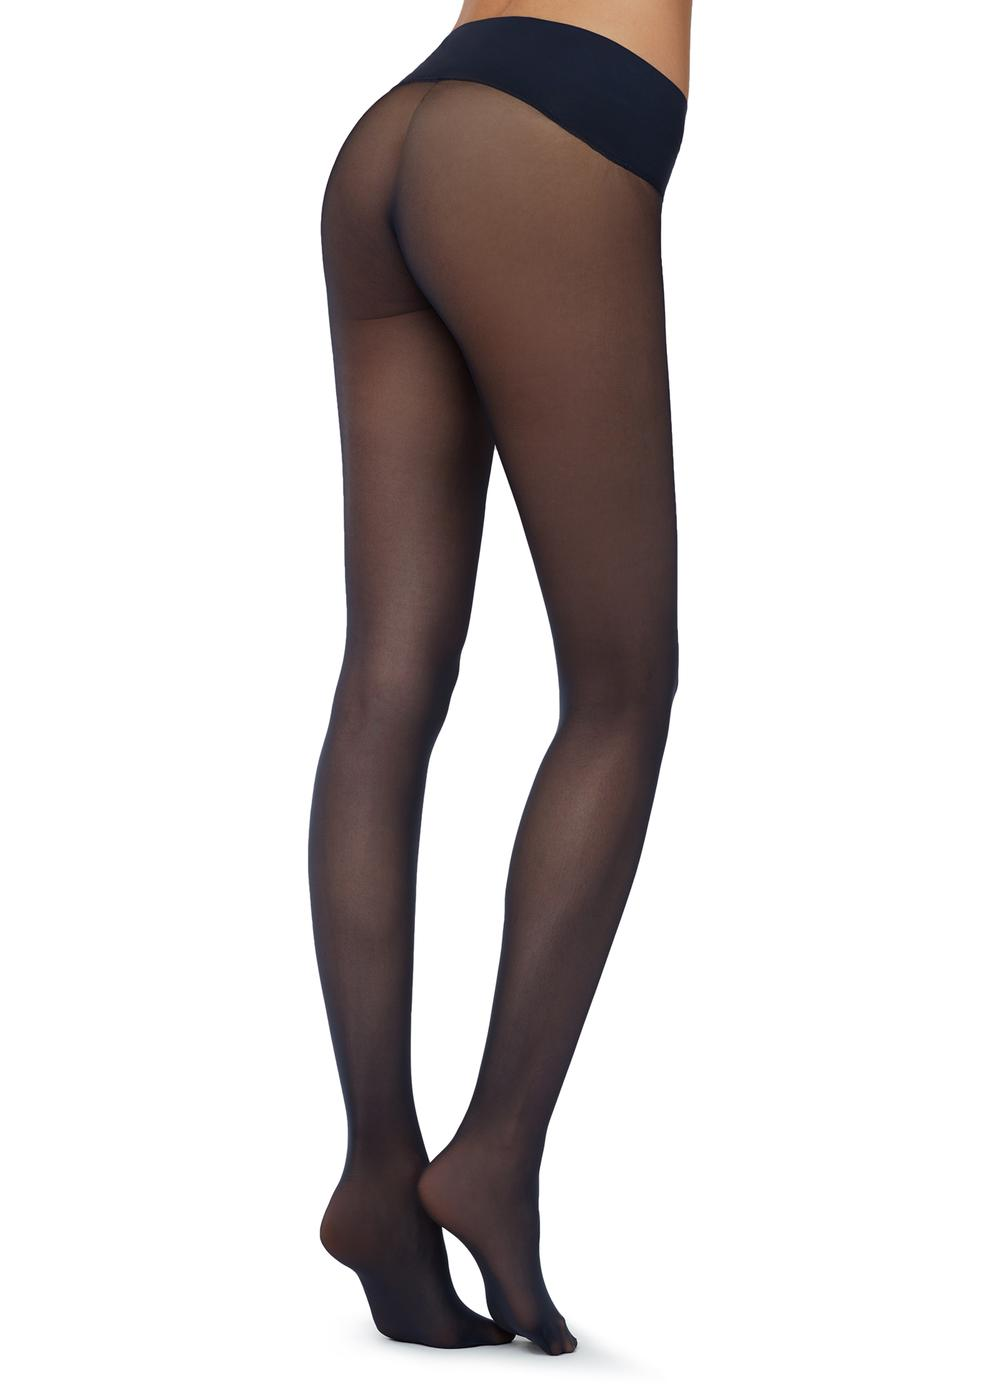 Collants Sem Costura Matt Velados 20 Denier Totally invisible Premium